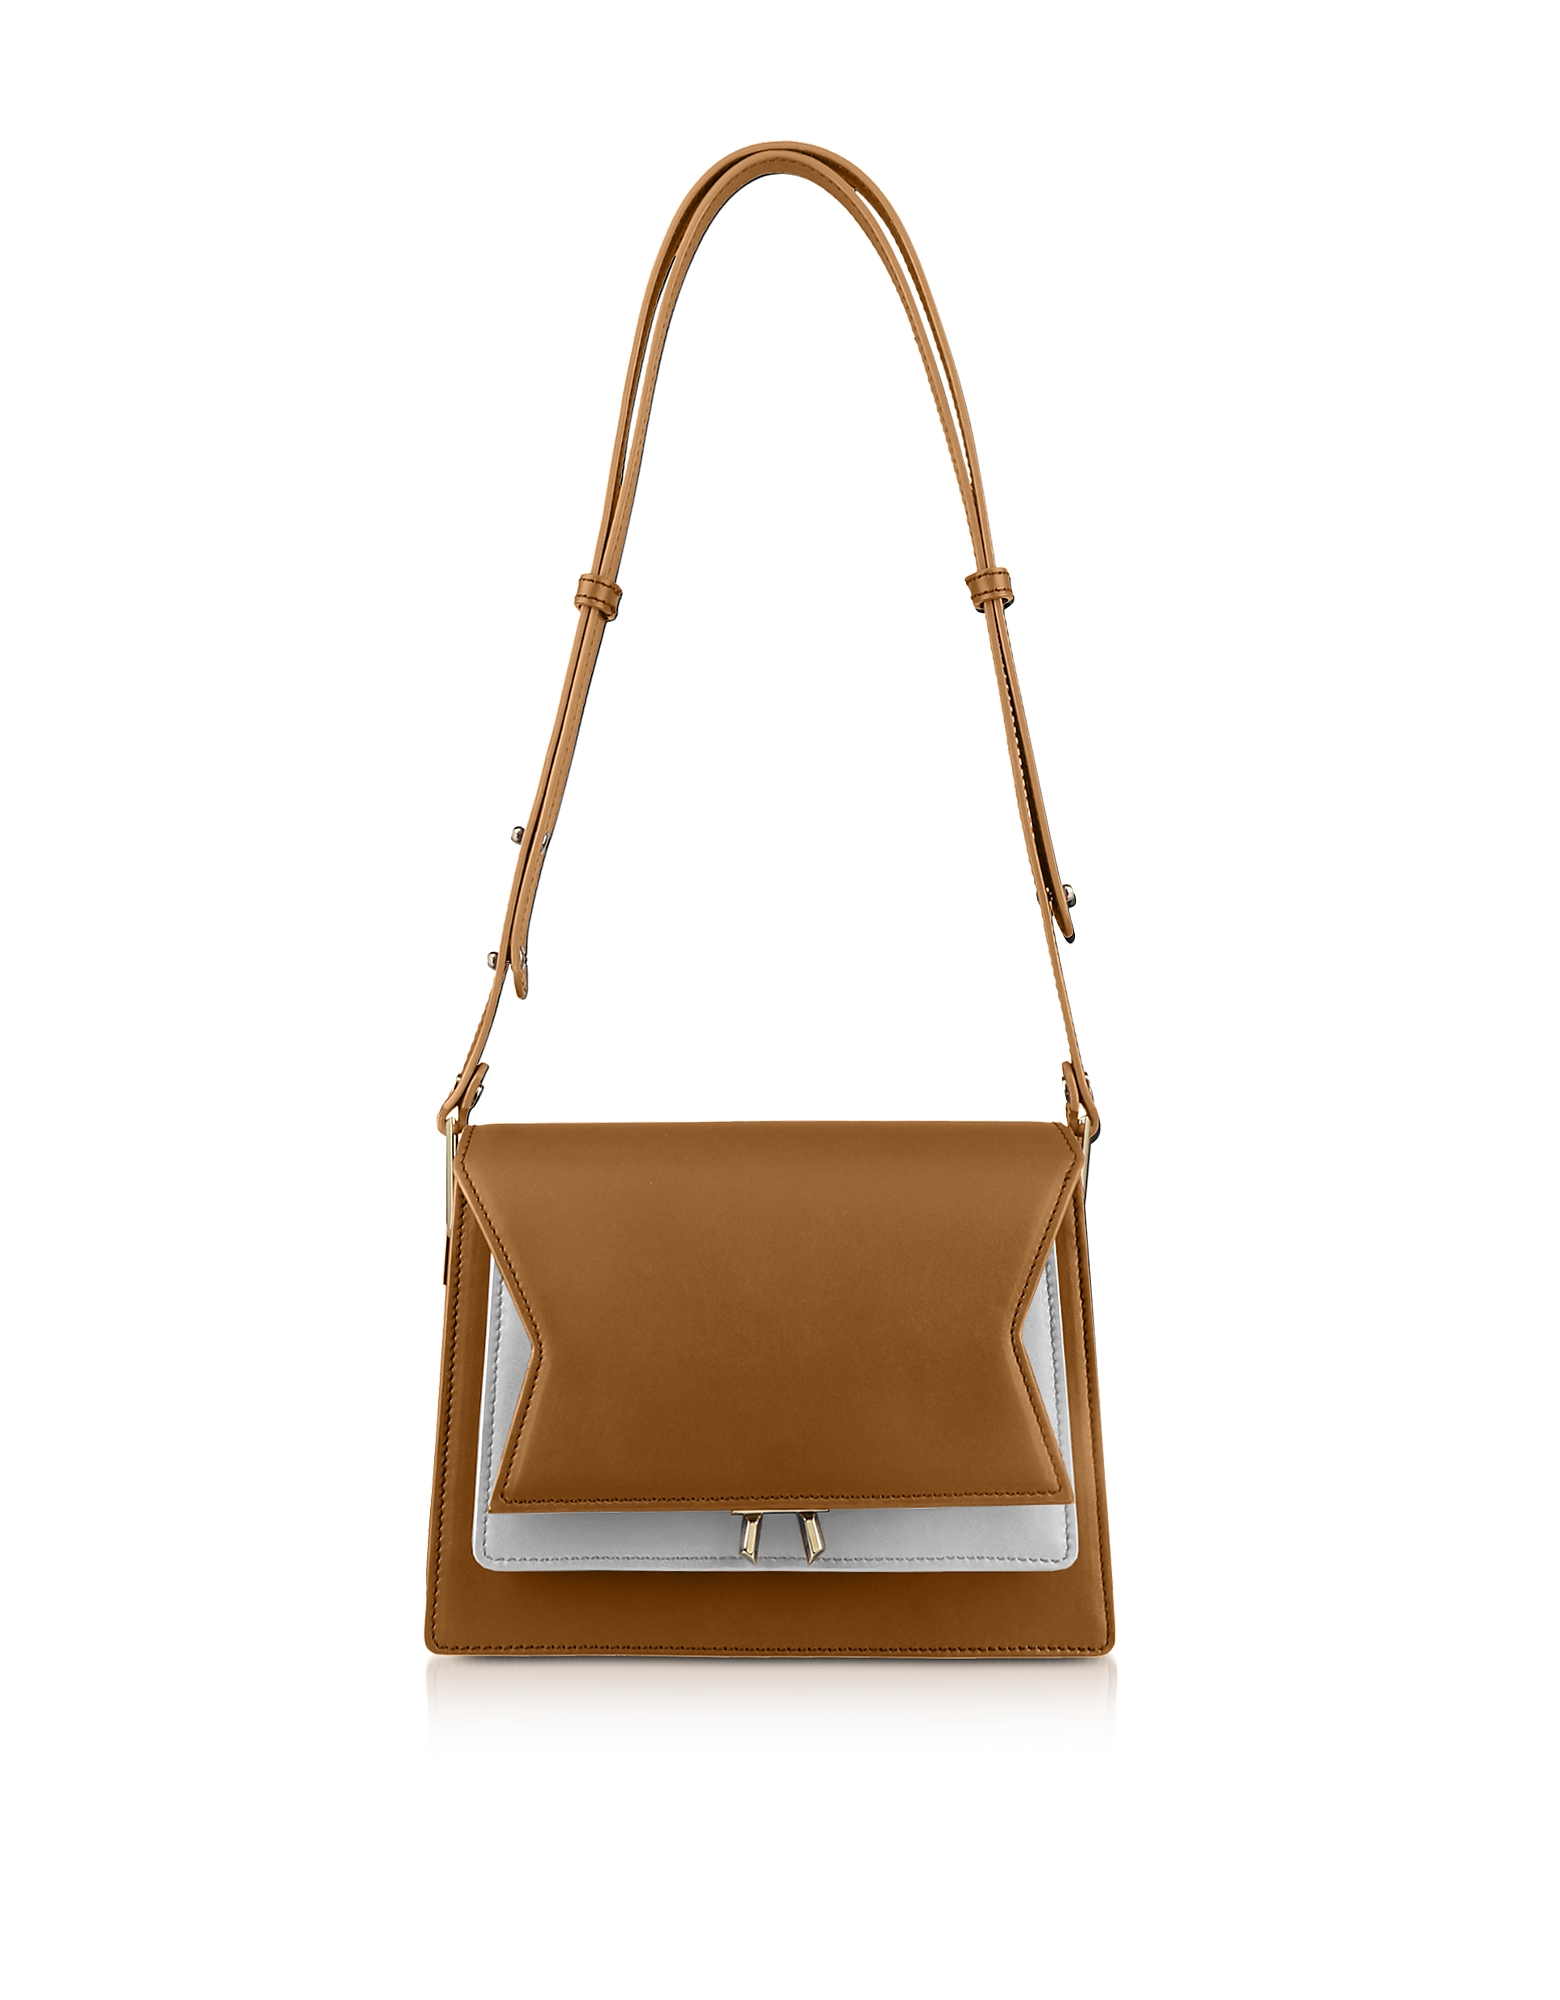 Lara Bellini  Handbags Two-Tone XOXO Shoulder Bag